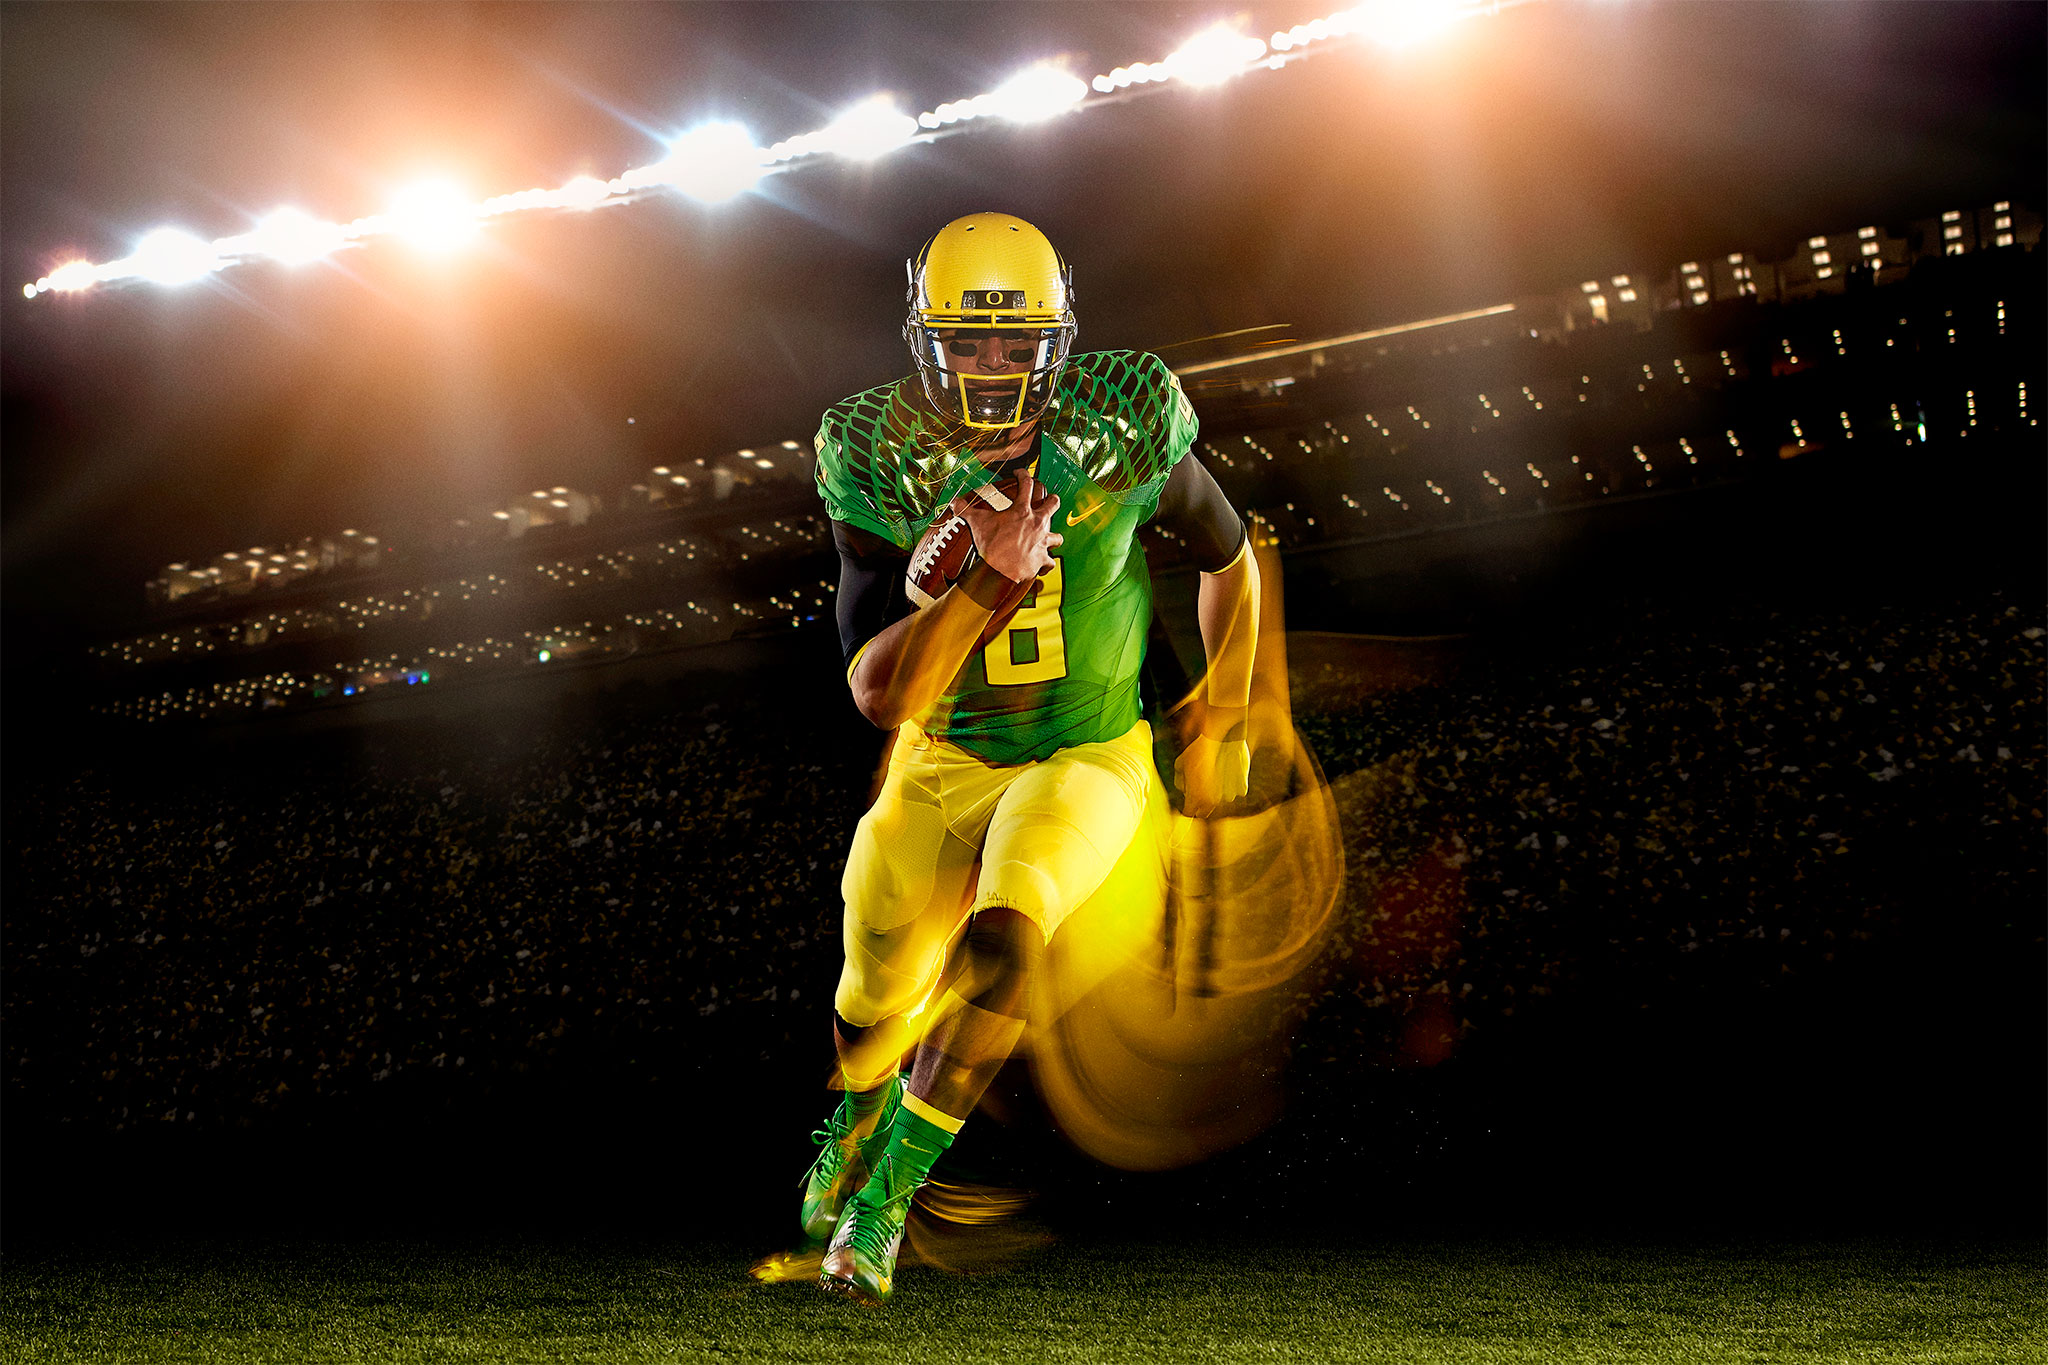 Marcus Mariota Breaking for a Run | Zach Ancell Photography